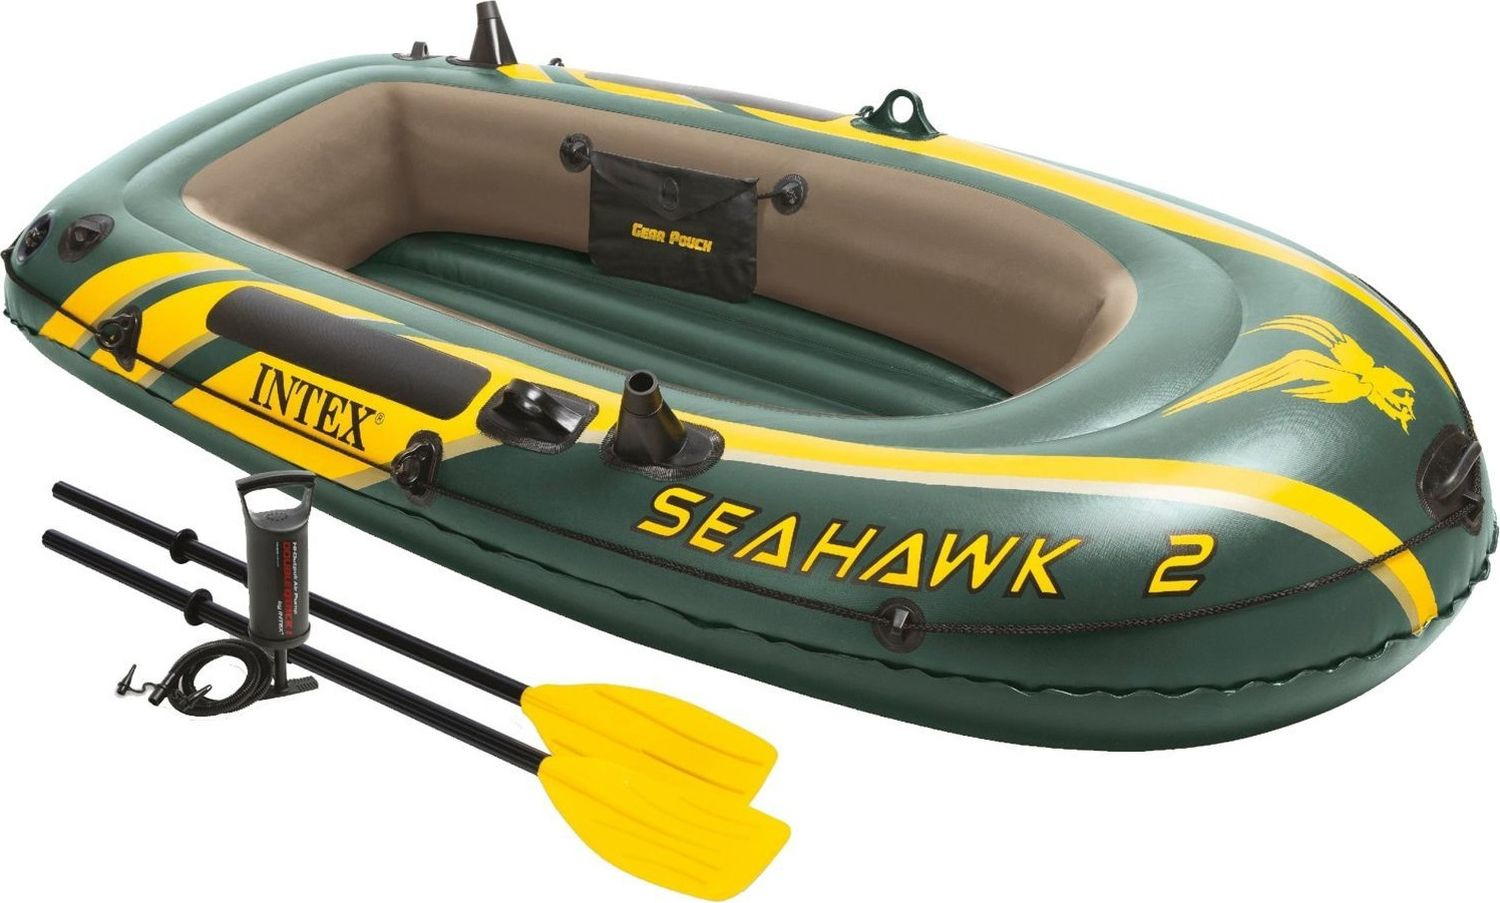 Лодка надувная Intex Seahawk 2 Set, 68347NP, с веслами и насосом, до 200 кг, 236 х 114 х 41 см